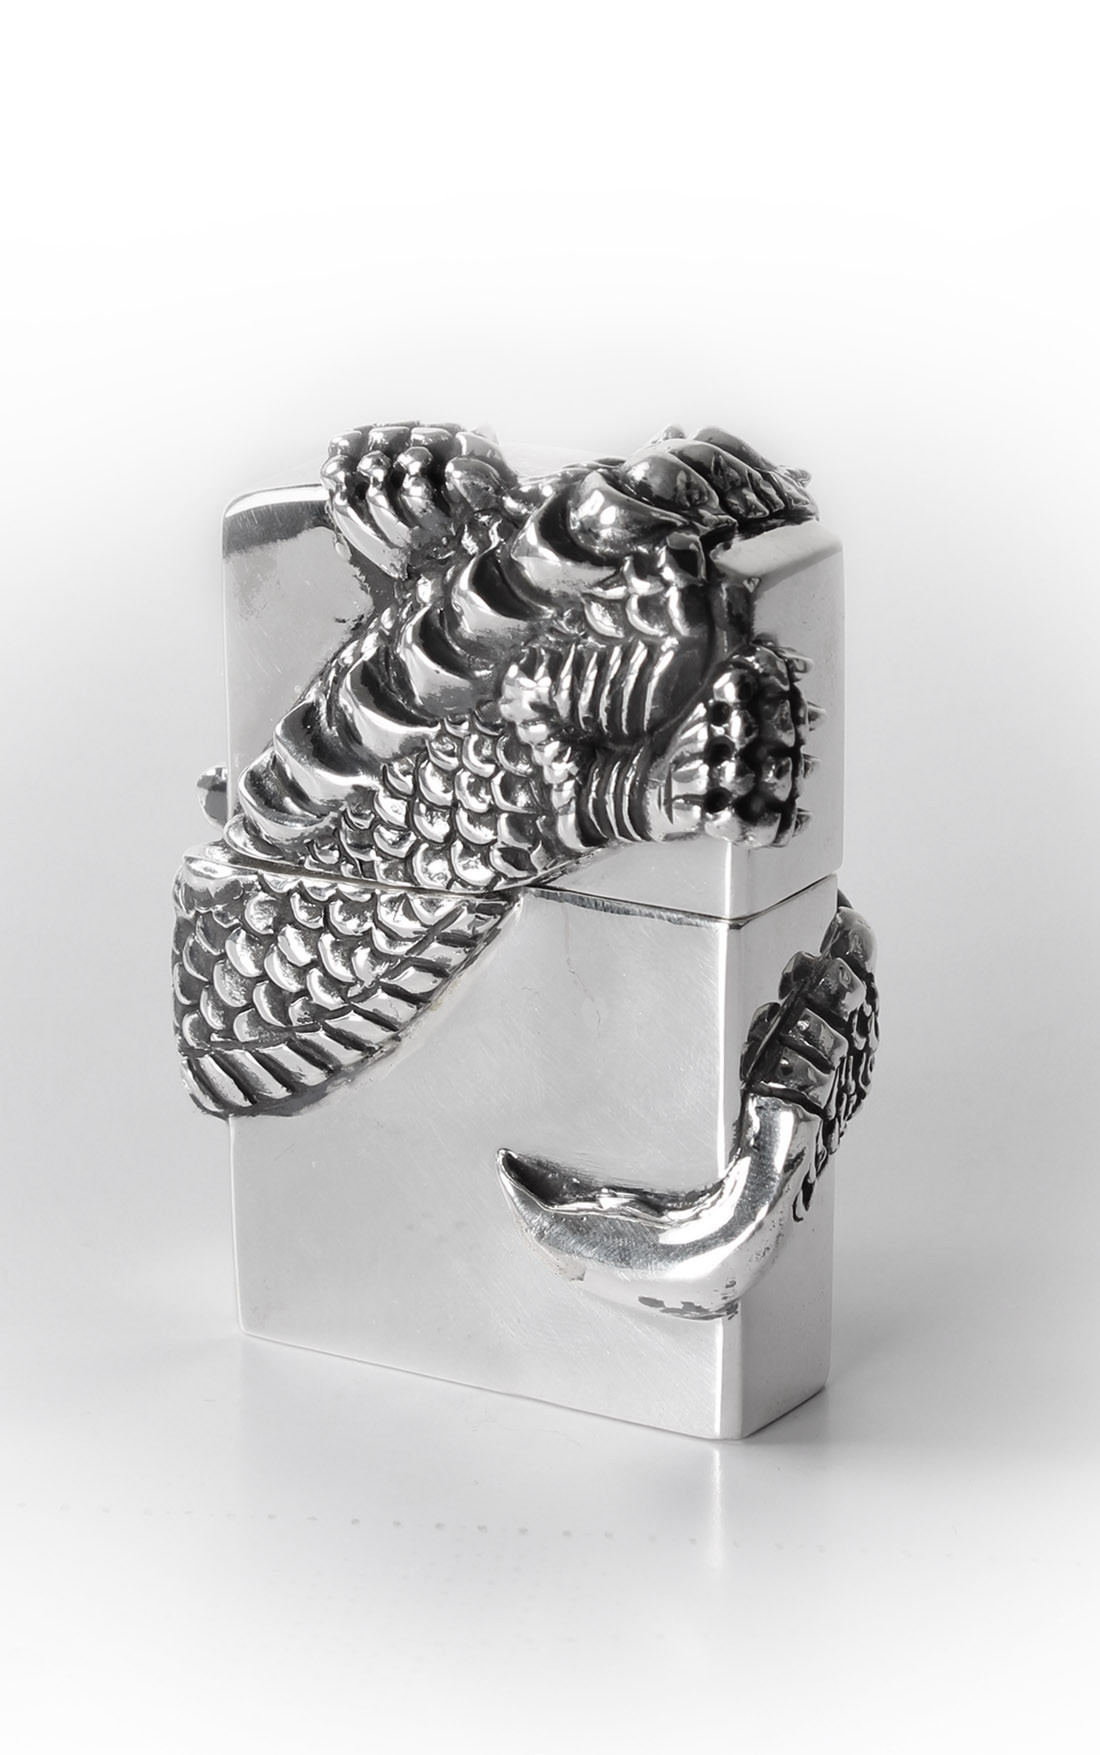 King Baby - Silver Dragon Lighter (A30-5002)